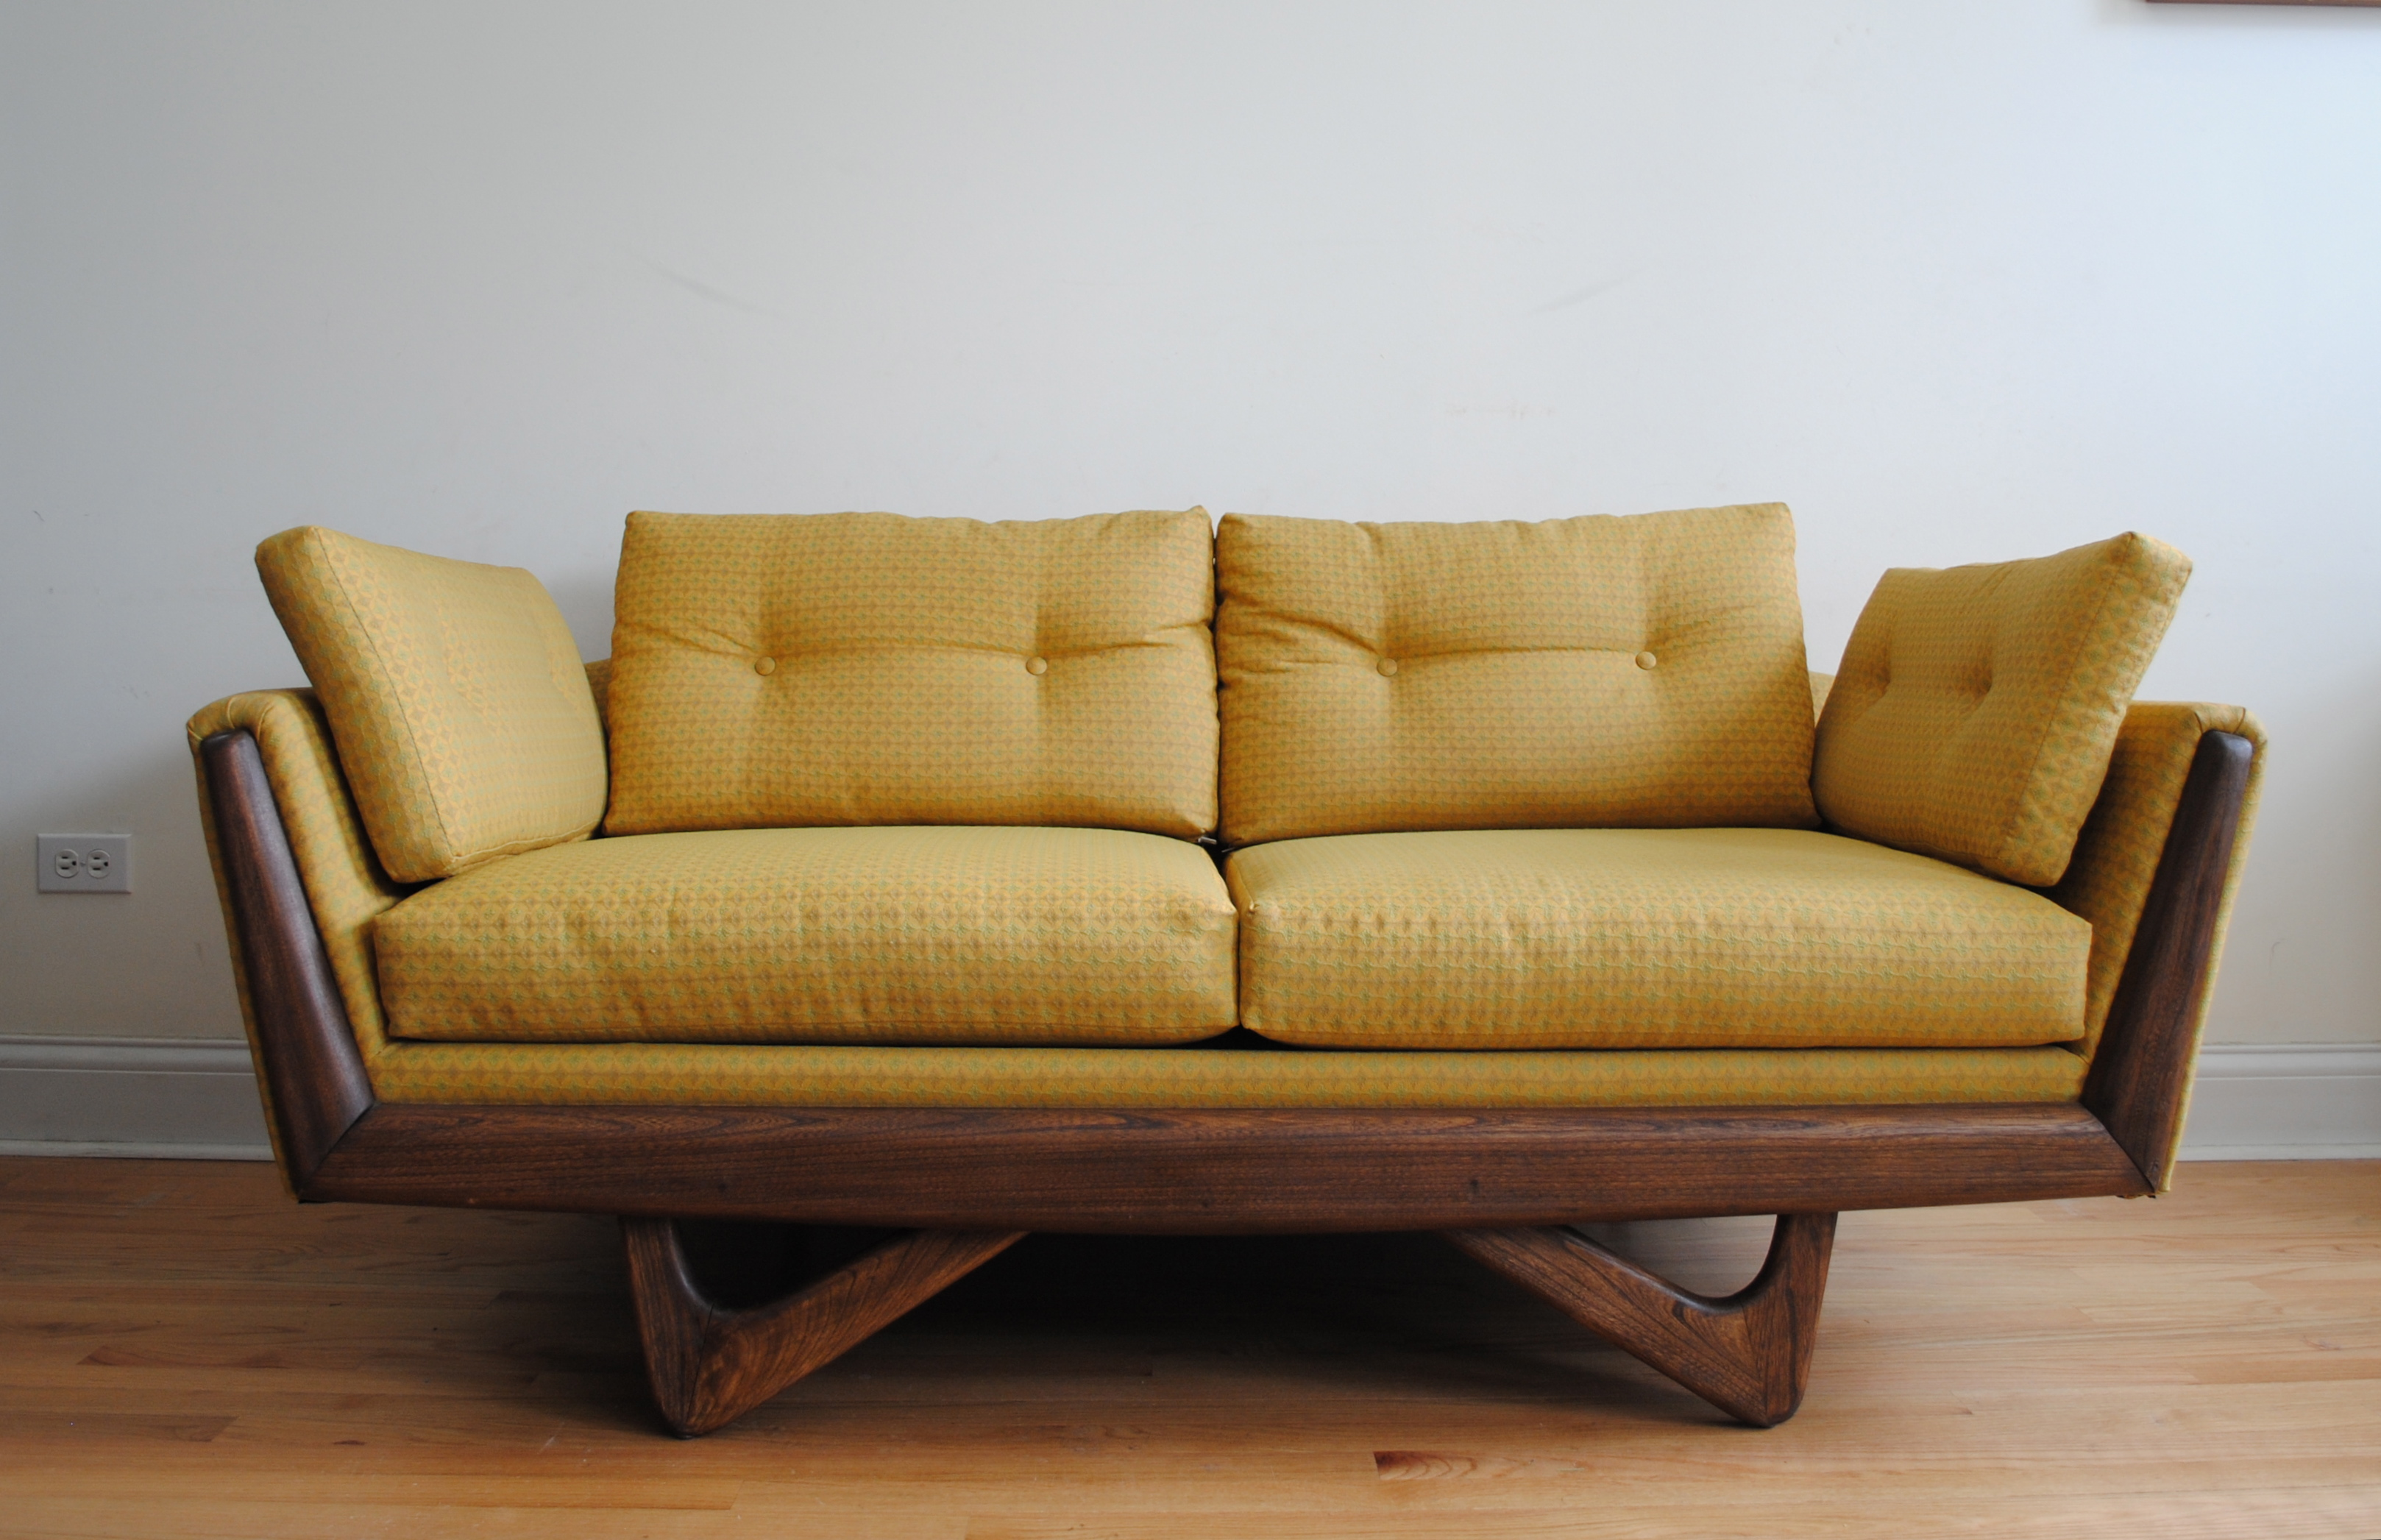 Mid century modern adrian pearsall sofa phylum furniture for Modern love seats